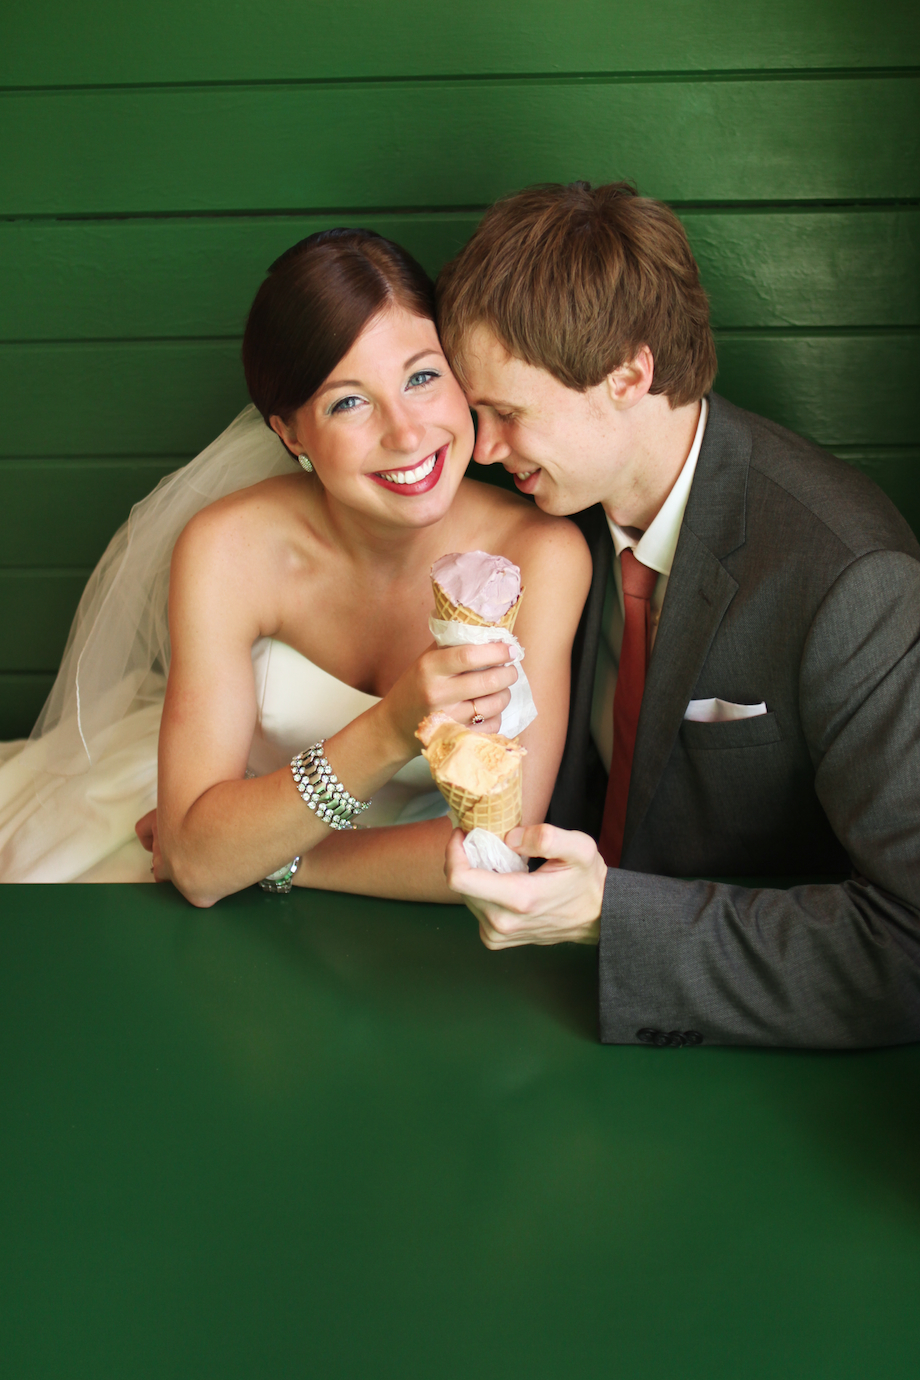 ice cream parlor wedding photo gem photo